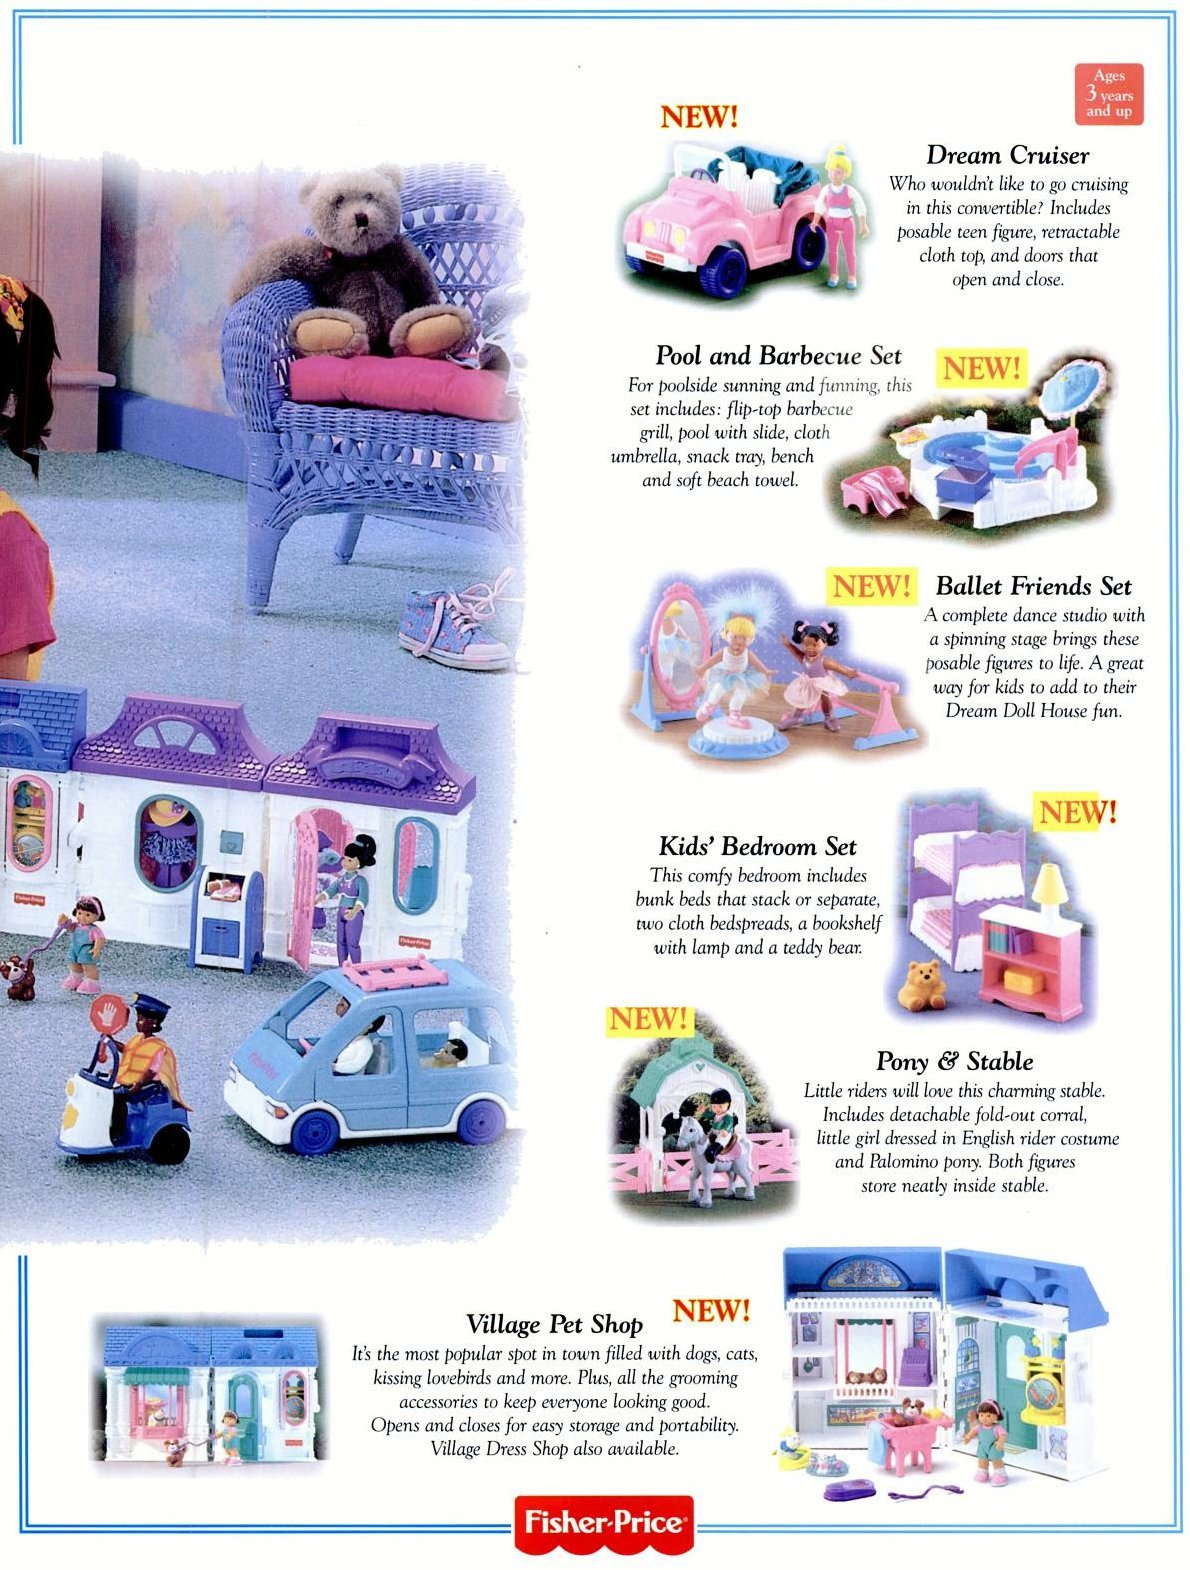 Fisher-Price vintage toys - Dream Doll House accessories (1996)